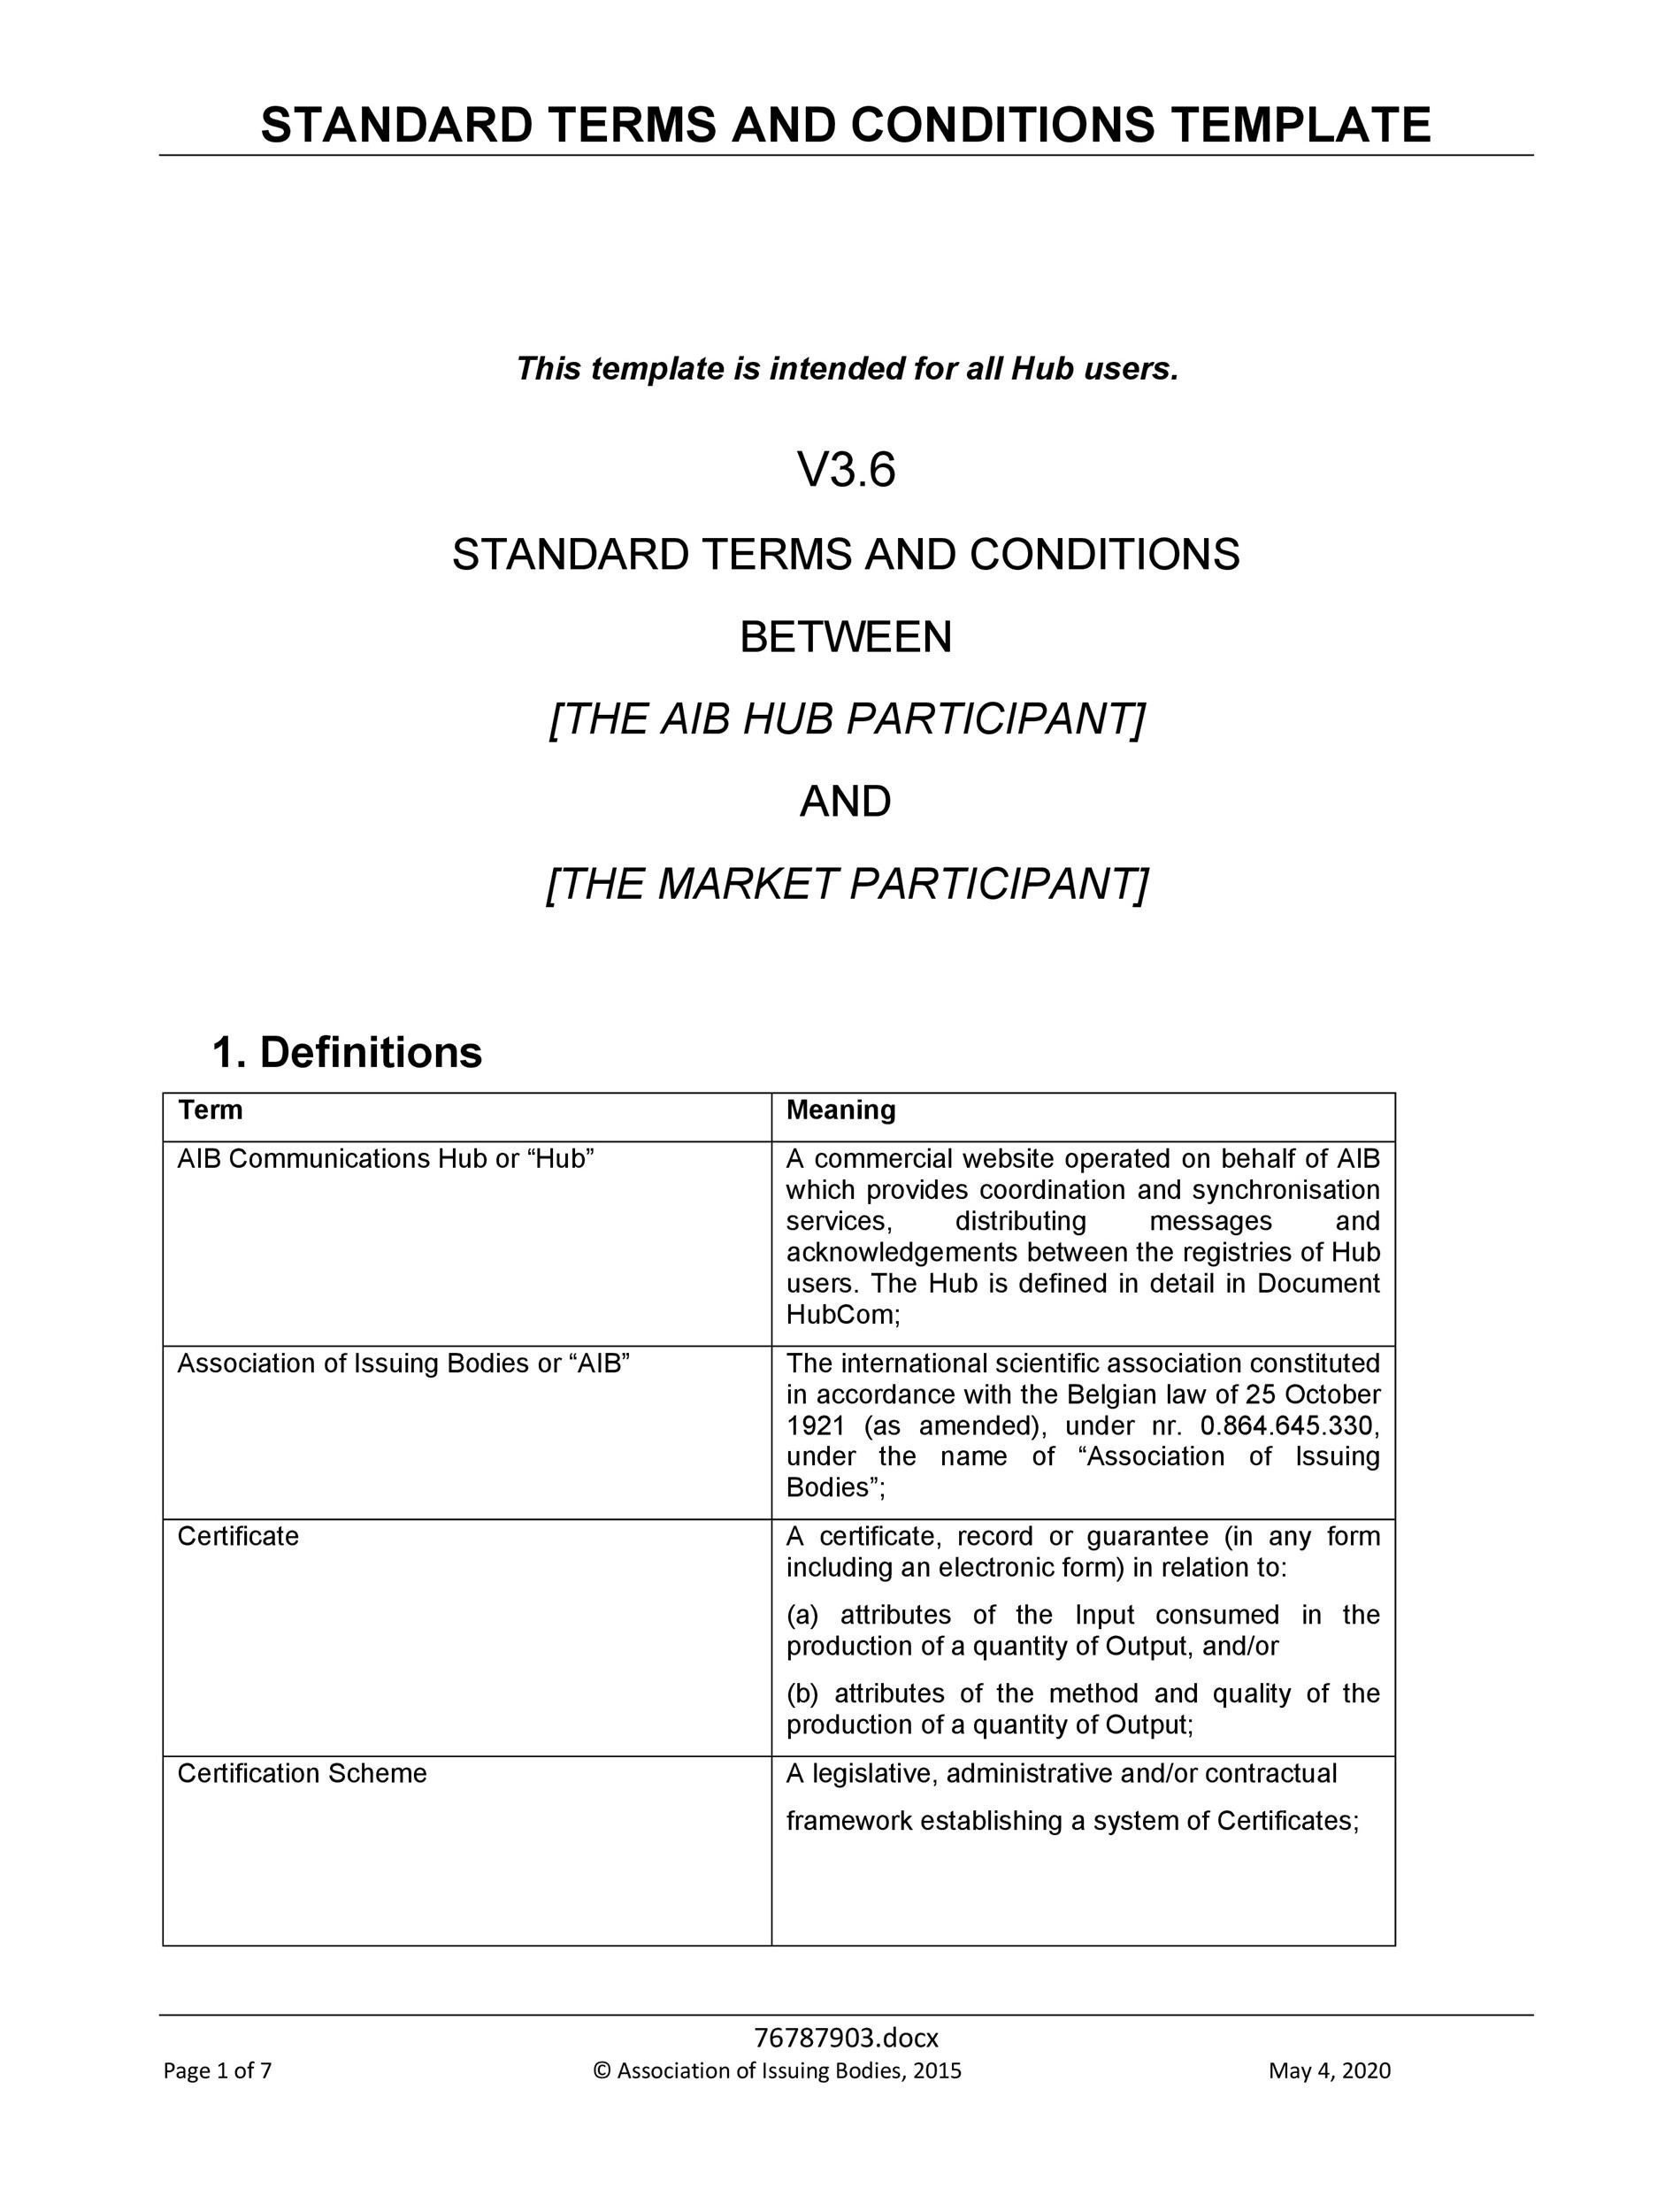 40 free terms and conditions templates for any website for Event terms and conditions template